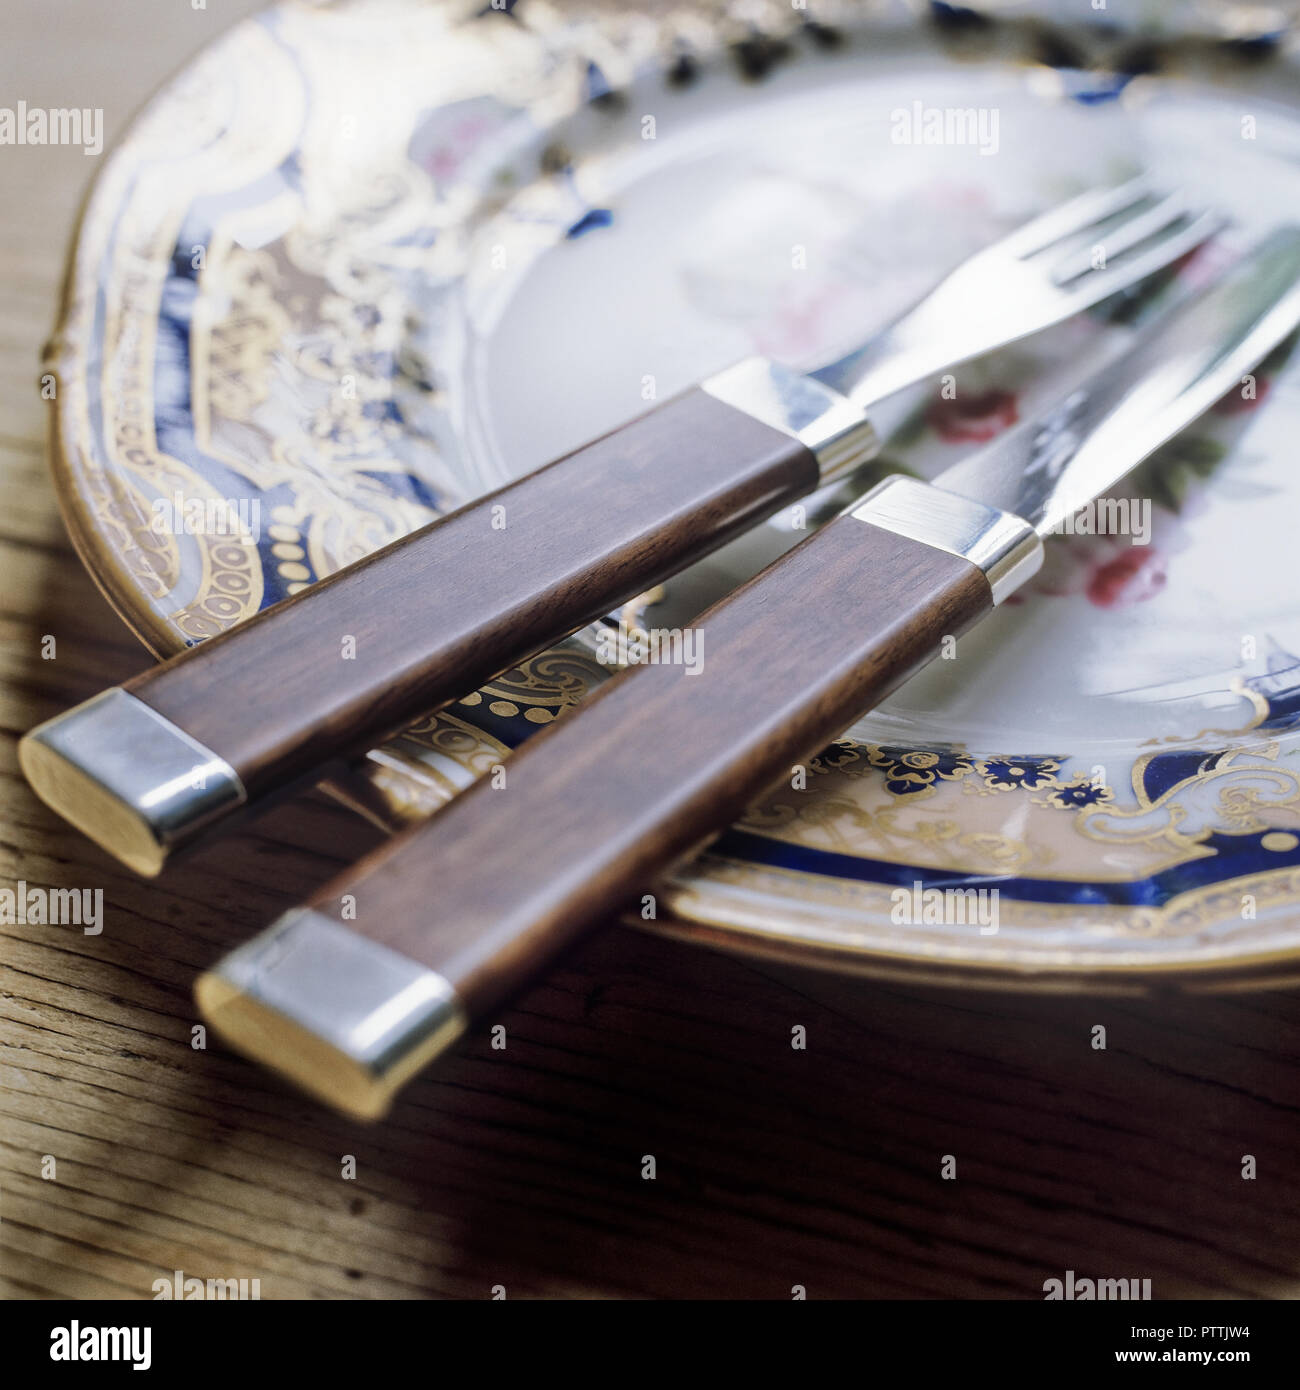 Cutlery designed by Lord Snowdon on decorative hand painted plate - Stock Image